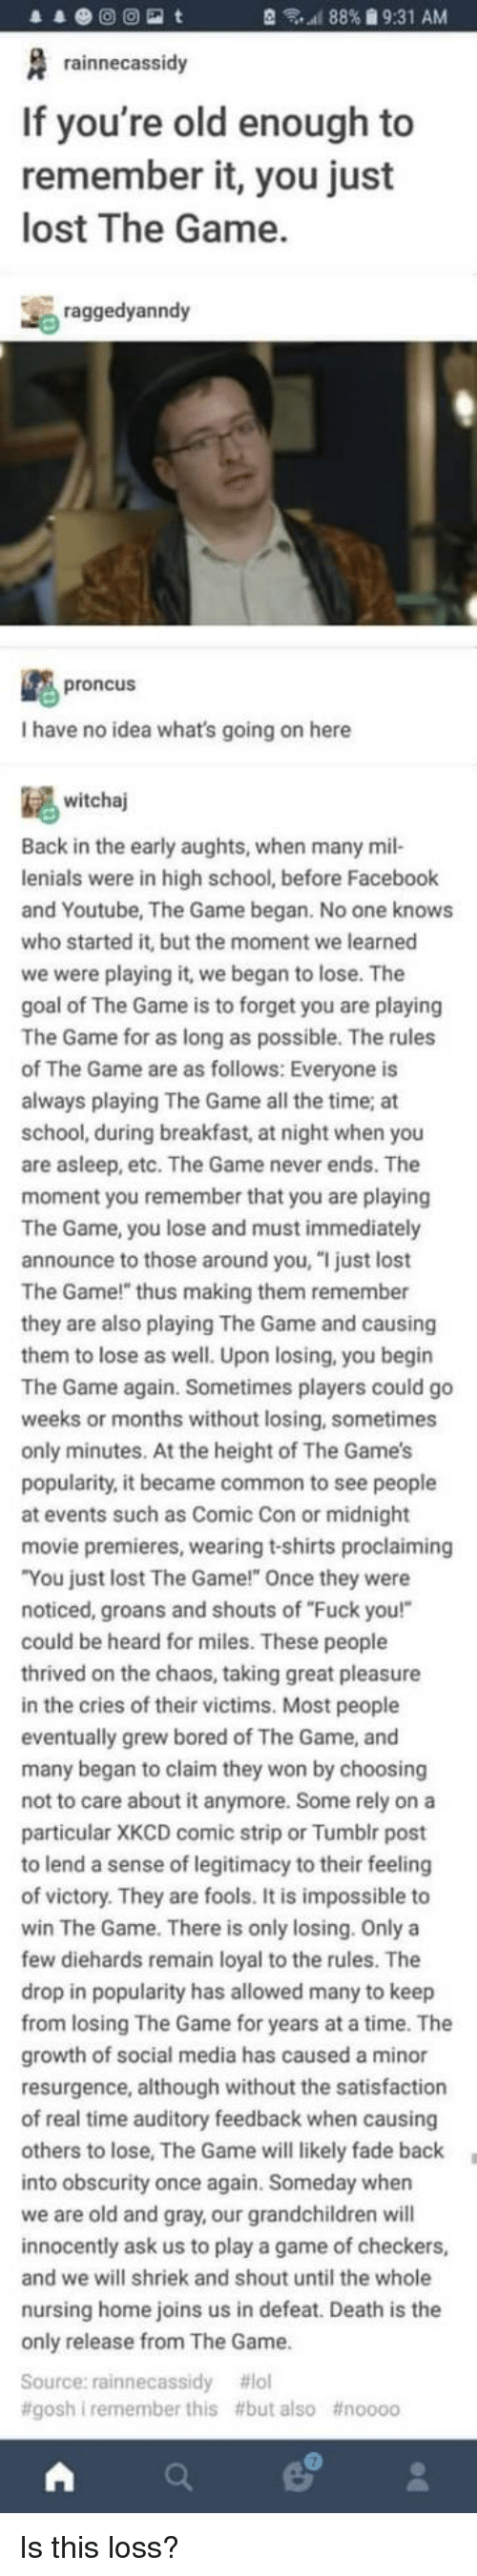 """Bored, Facebook, and Fuck You: 88% 9:31 AM  rainnecassidy  If you're old enough to  remember it, you just  lost The Game.  raggedyanndy  proncus  I have no idea what's going on here  witchaj  Back in the early aughts, when many mil-  lenials were in high school, before Facebook  and Youtube, The Game began. No one knows  who started it, but the moment we learned  we were playing it, we began to lose. The  goal of The Game is to forget you are playing  The Game for as long as possible. The rules  The Game are as follows: Everyone is  ays playing The Game all the time; at  school, during breakfast, at night when you  are asleep, etc. The Game never ends. The  moment you remember that you are playing  The Game, you lose and must immediately  announce to those around you, """"I just lost  The Game!"""" thus making them remember  they are also playing The Game and causing  them to lose as well. Upon losing, you begin  The Game again. Sometimes players could go  weeks or months without losing, sometimes  only minutes. At the height of The Game's  popularity, it became common to see people  at events such as Comic Con or midnight  movie premieres, wearing t-shirts proclaiming  You just lost The Game!"""" Once they were  noticed, groans and shouts of """"Fuck you!""""  could be heard for miles. These people  rived on the chaos, taking great pleasure  in the cries of their victims. Most people  eventually grew bored of The Game, and  many began to claim they won by choosing  not to care about it anymore. Some rely on a  particular XKCD comic strip or Tumblr post  to lend a sense of legitimacy to their feeli  of victory. They are fools. It is impossible to  win The Game. There is only losing. Only a  few diehards remain loyal to the rules. The  drop in popularity has allowed many to keep  m losing The Game for years at a time. The  growth of social media has caused a minor  resurgence, although without the satisfaction  of real time auditory feedback when caus  others to lose, The Game will"""